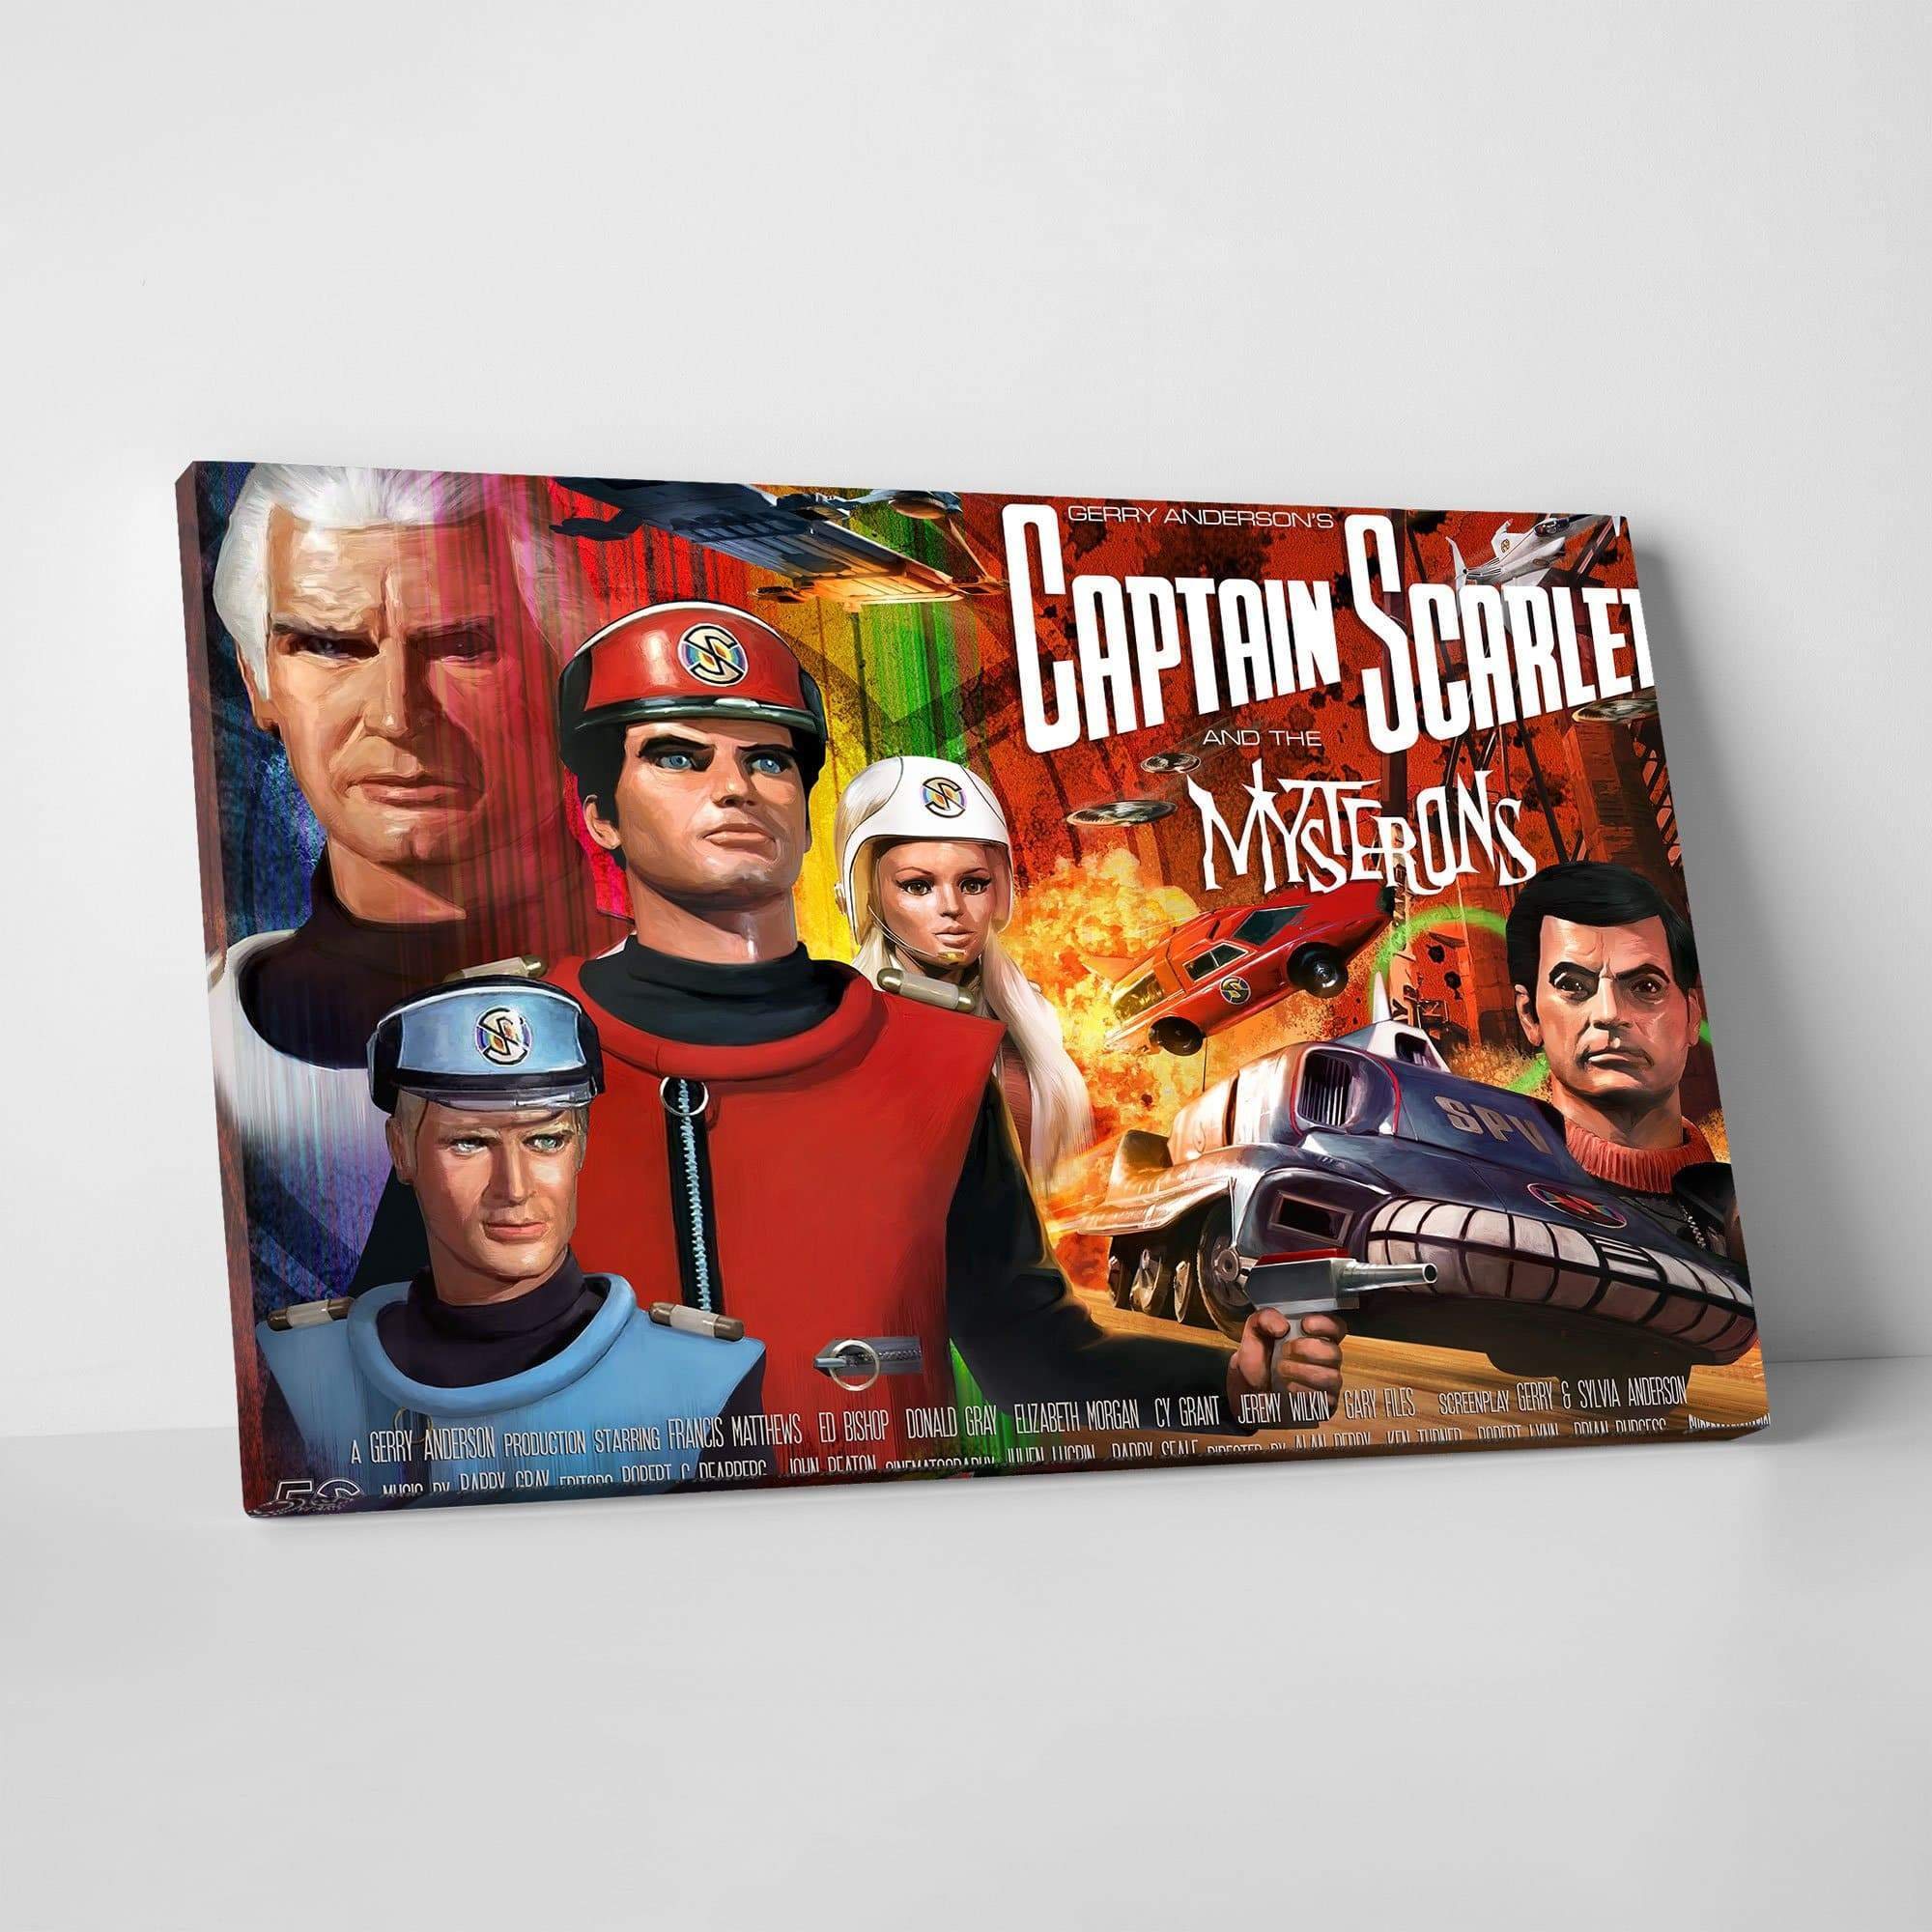 Official Captain Scarlet 50th Anniversary Canvas Print [Official & Exclusive] - The Gerry Anderson Store